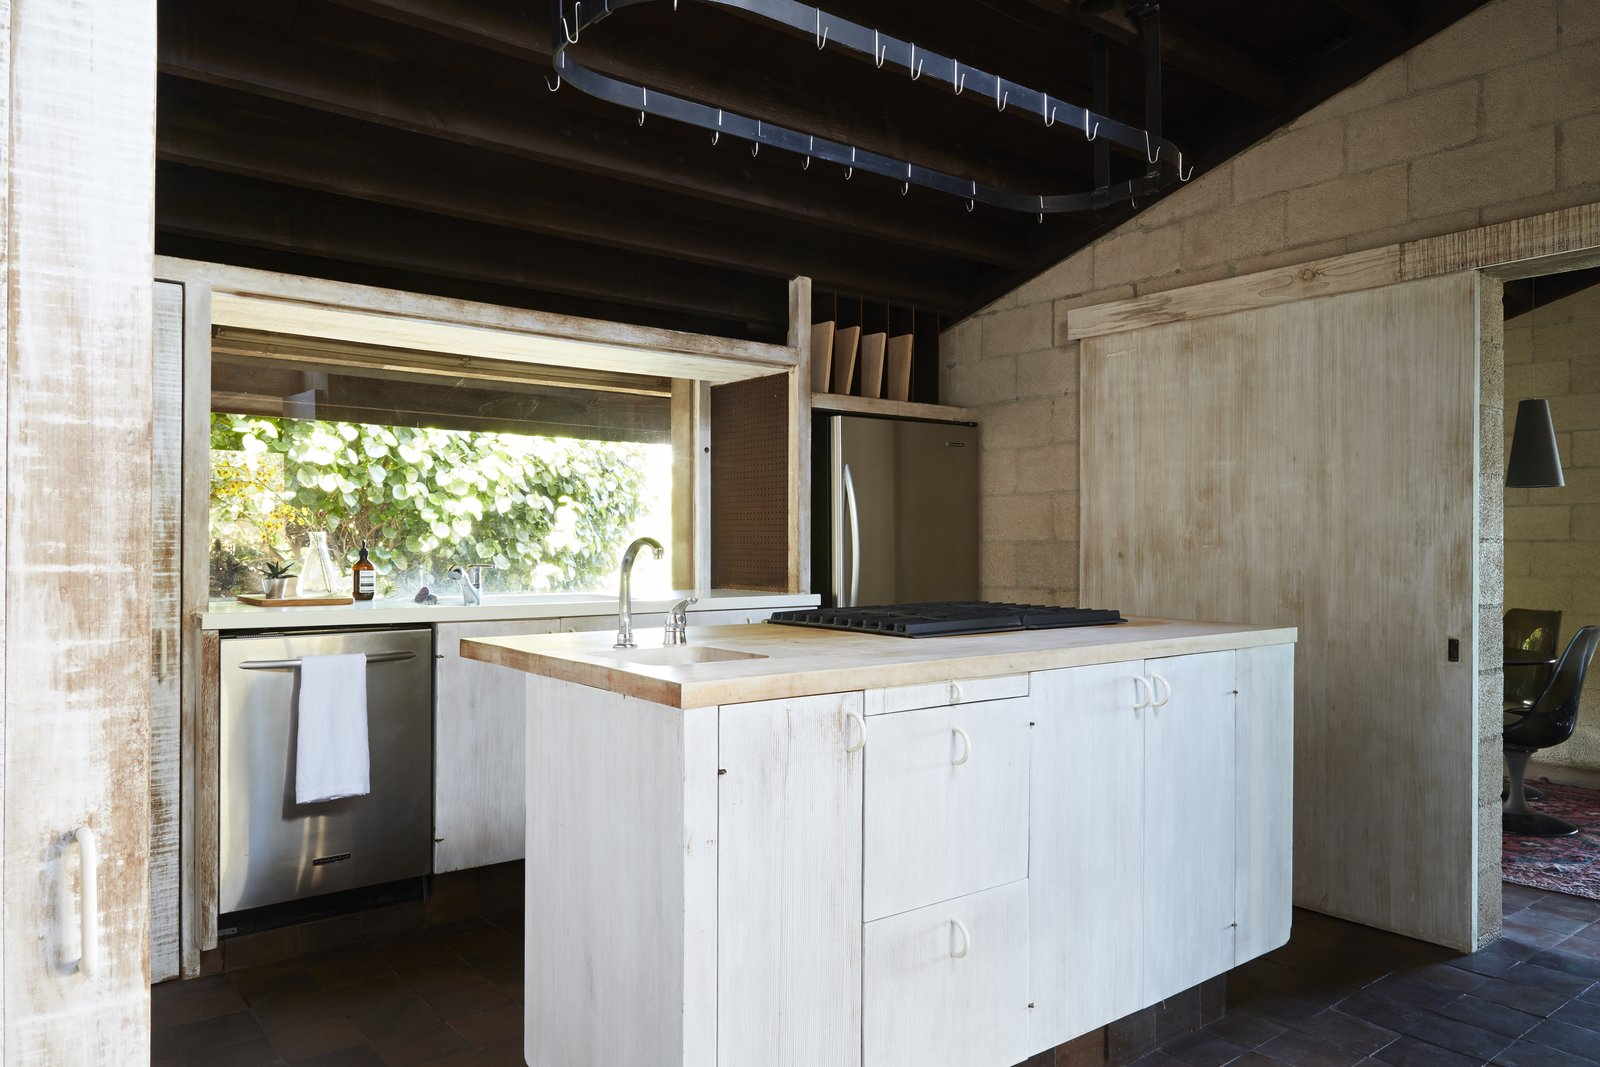 Kitchen, Dishwasher, White, Ceramic Tile, Wood, Wood, Range, Refrigerator, and Drop In In the kitchen, rough-cut wood was treated to give it a bleached look that contrasts with the dark ceiling.  Best Kitchen Range Dishwasher Refrigerator Drop In White Photos from A Famed Japanese Composer's Effortless Honolulu Hideout Asks $2.95M